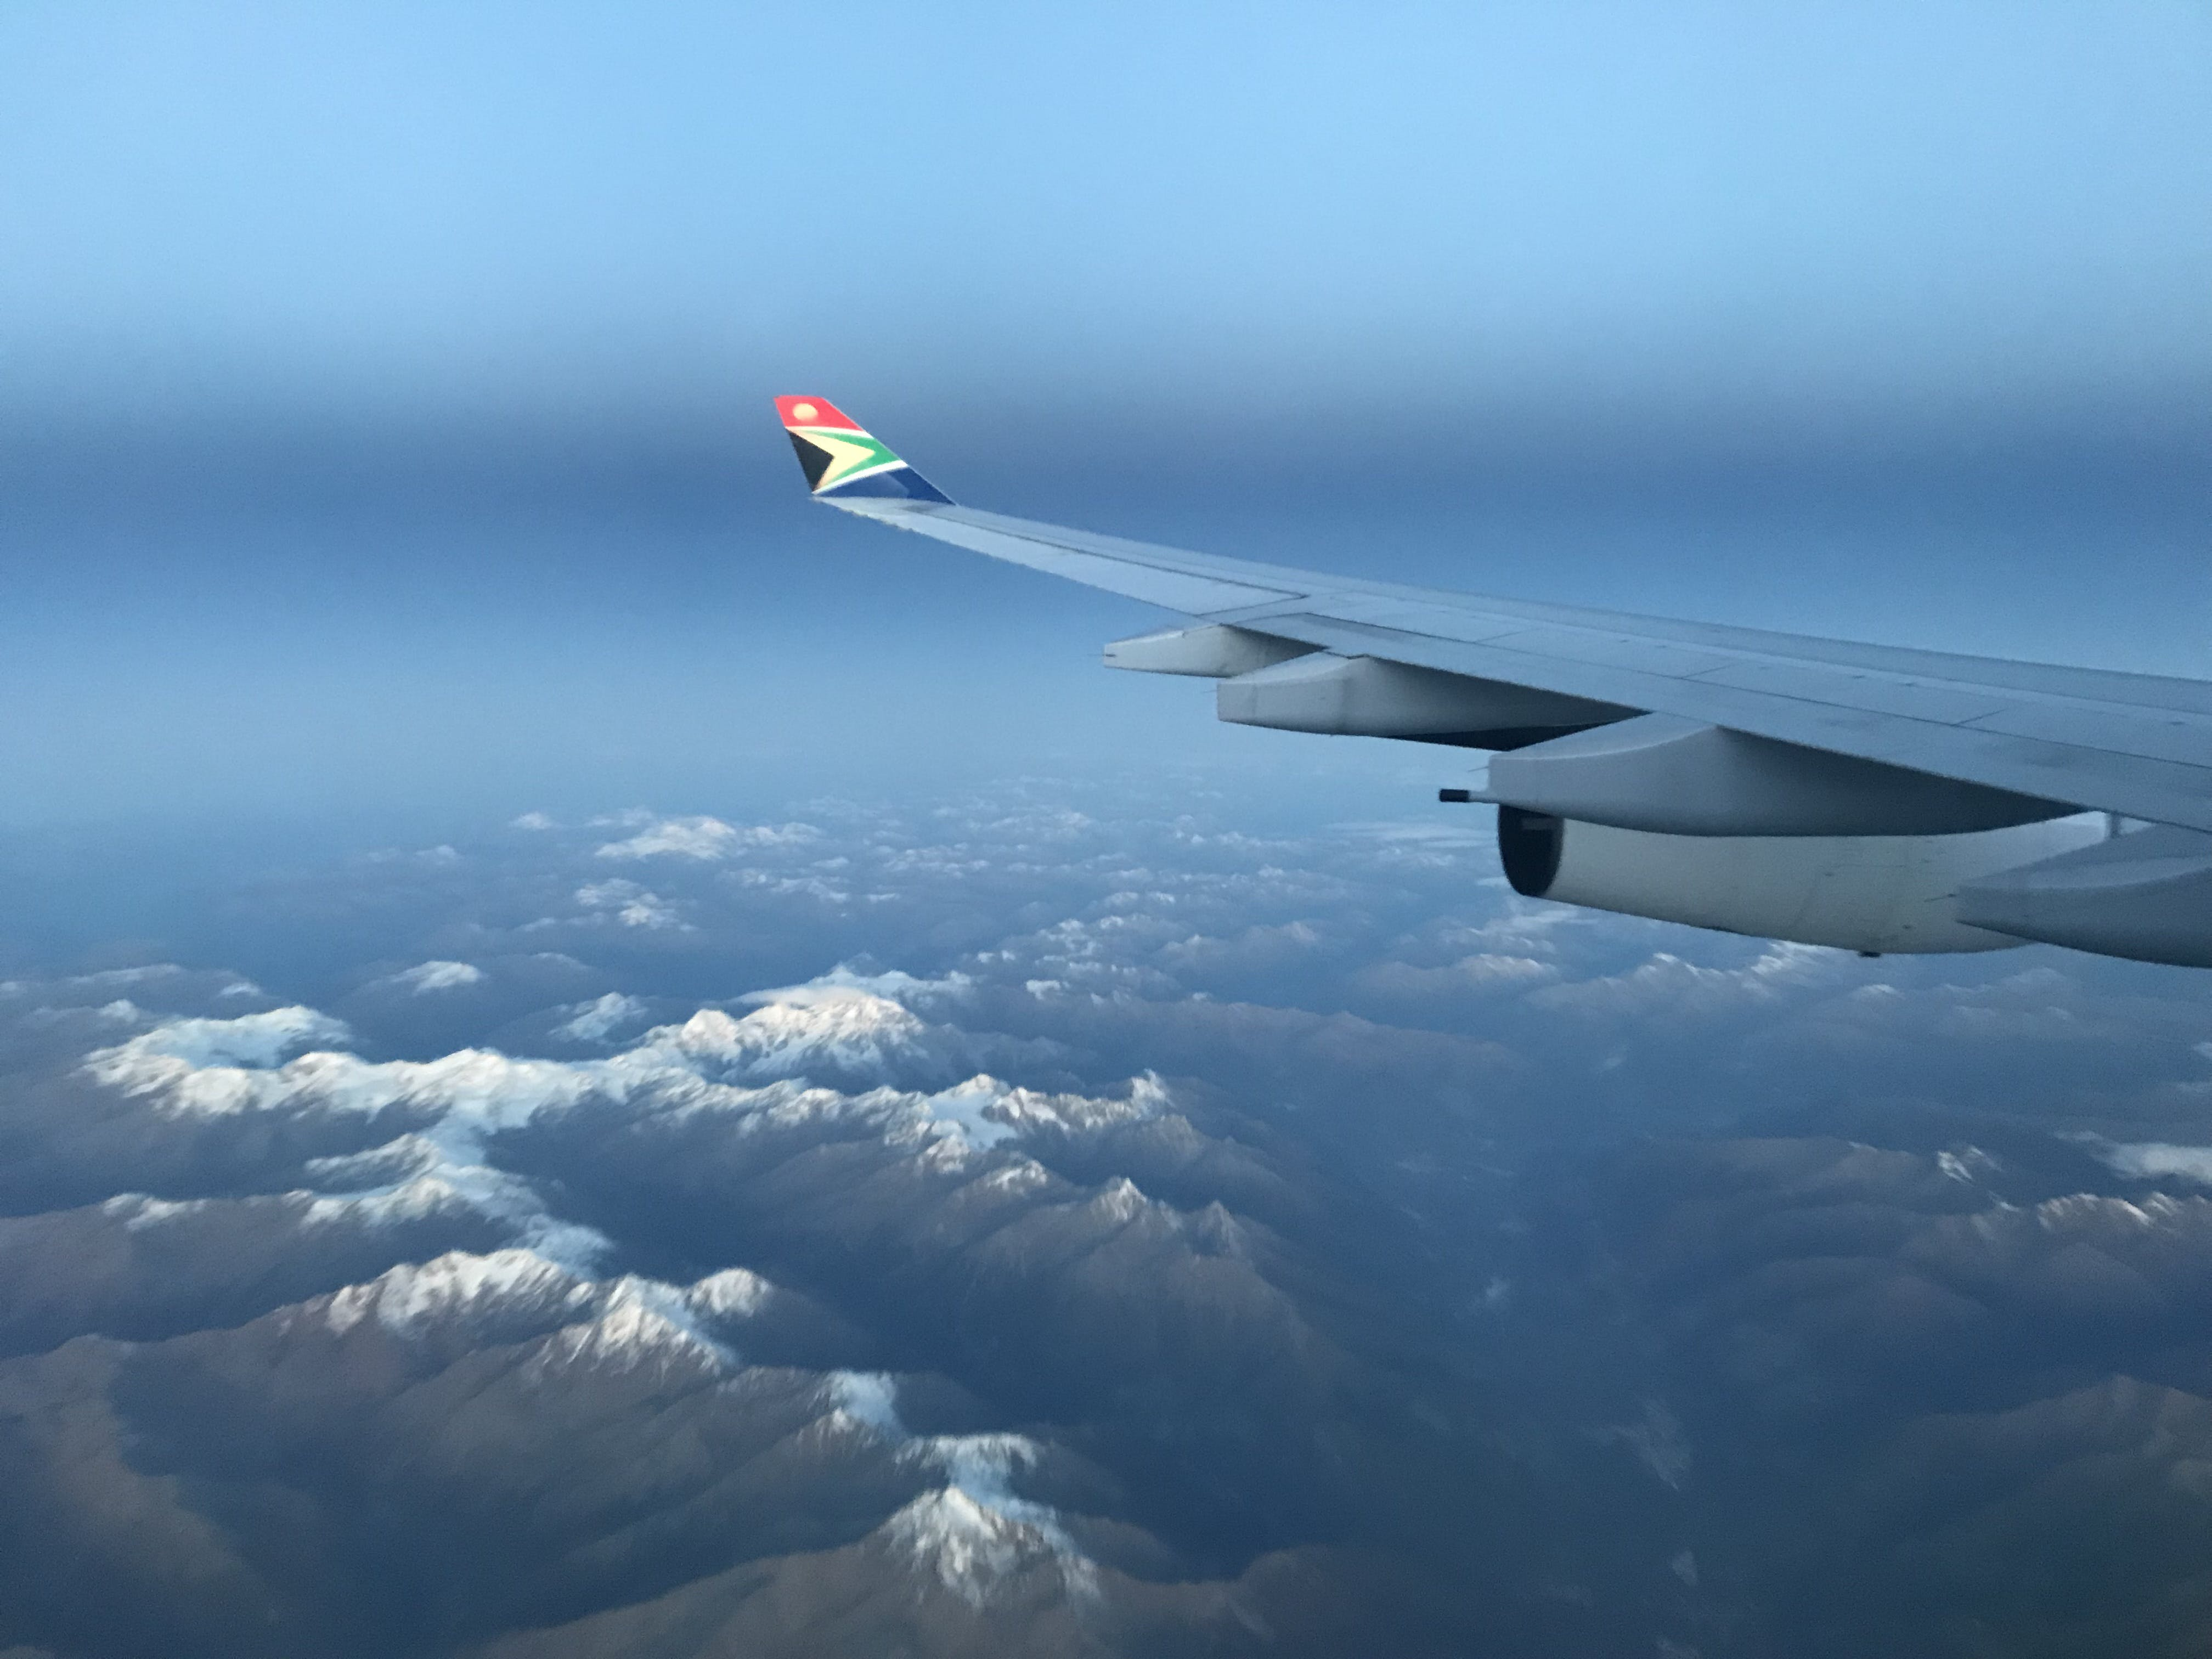 Free stock photo of aeroplane, airplane, alps, altitude